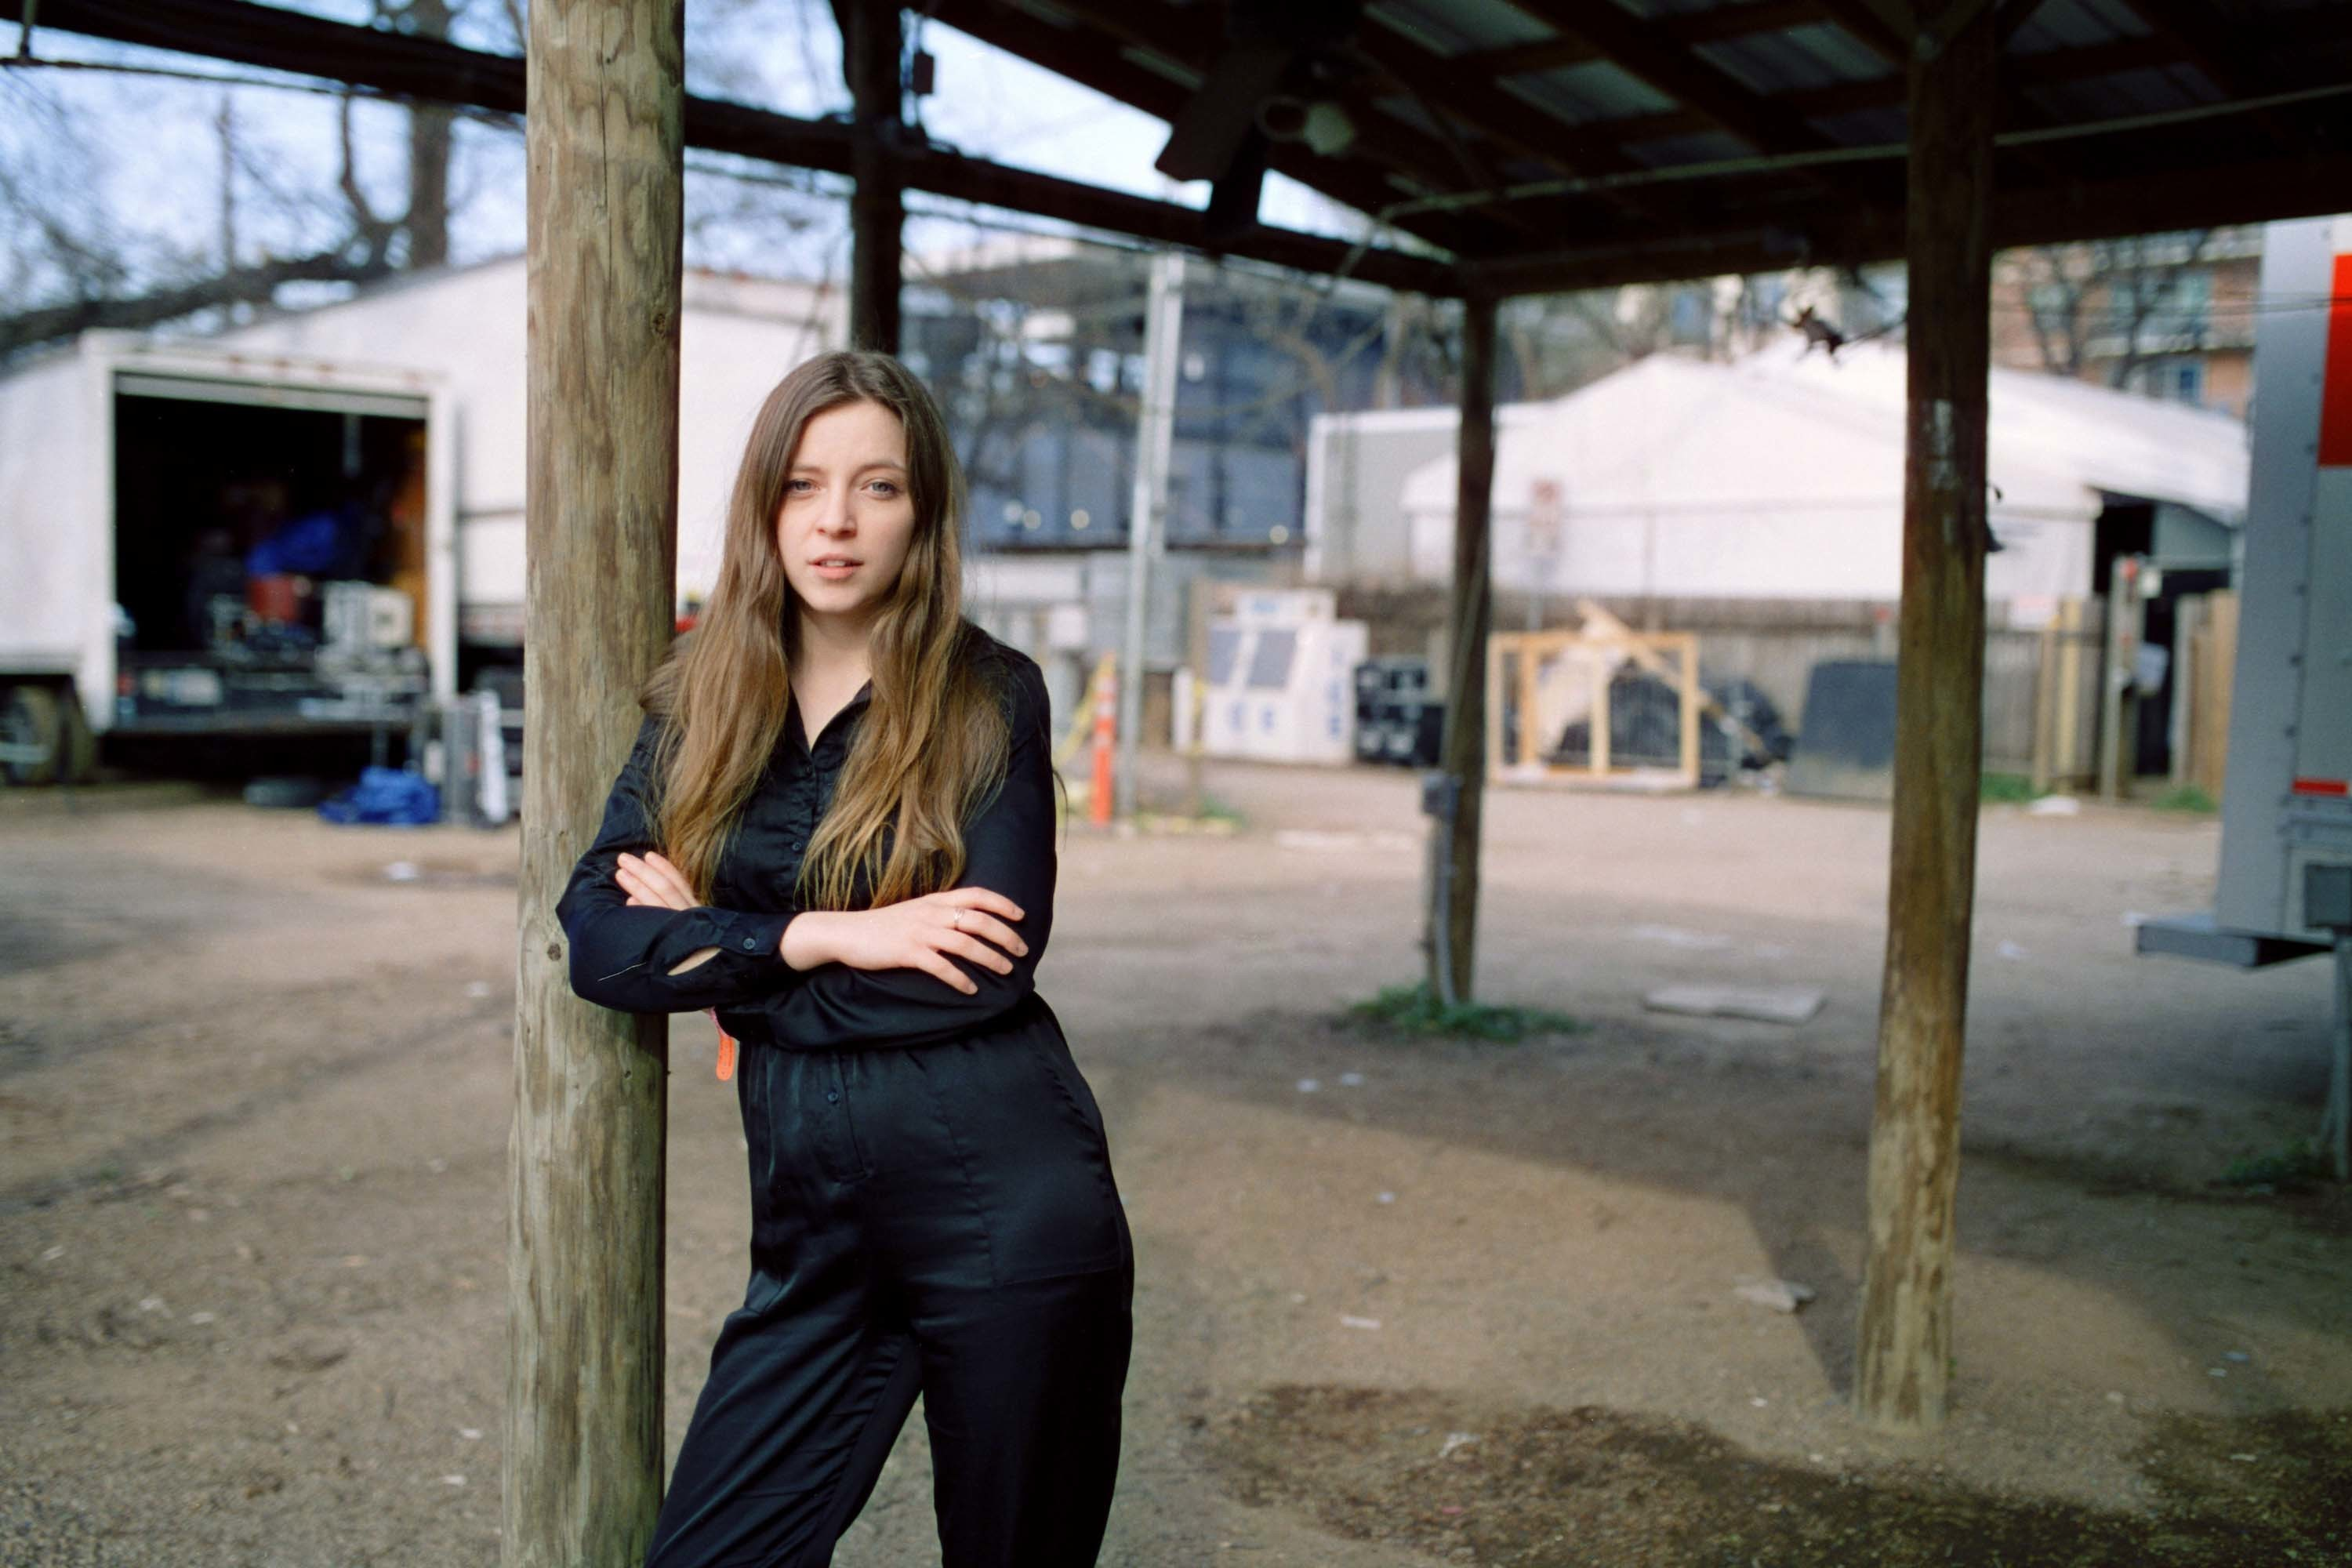 Get To Know... Jade Bird